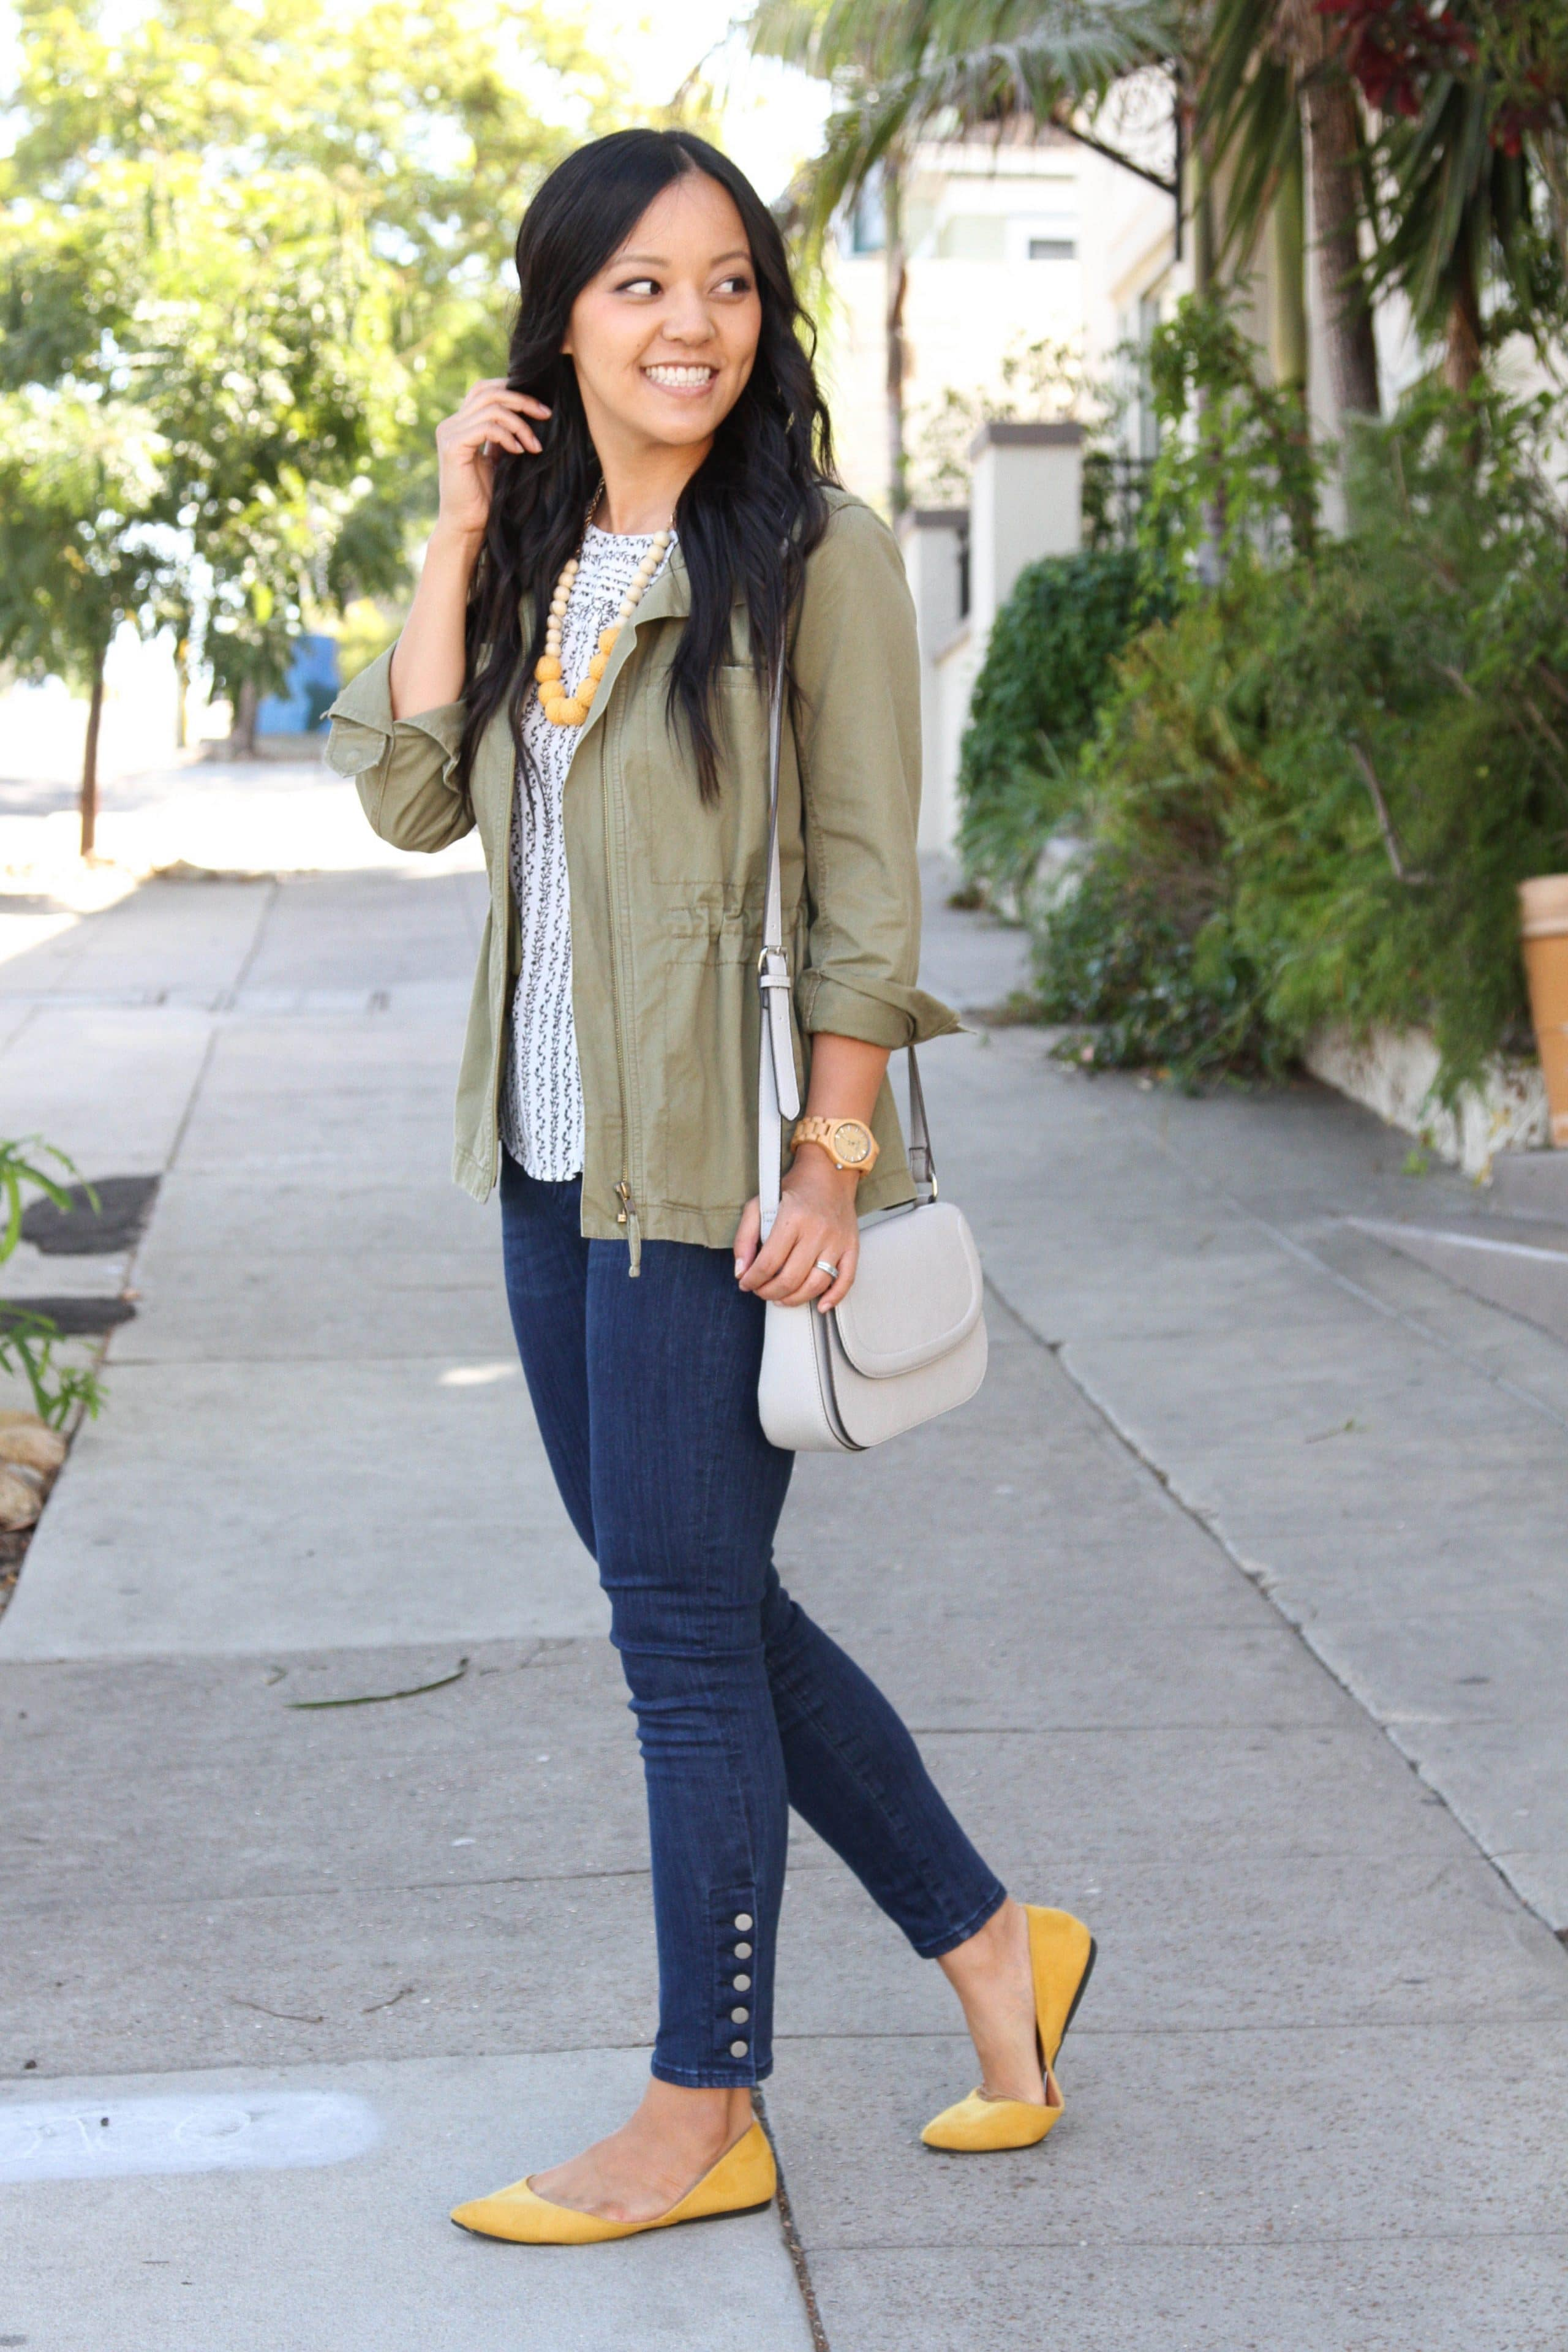 Utility Jacket + Blouse + Skinny jeans + Mustard Flats + gray bag